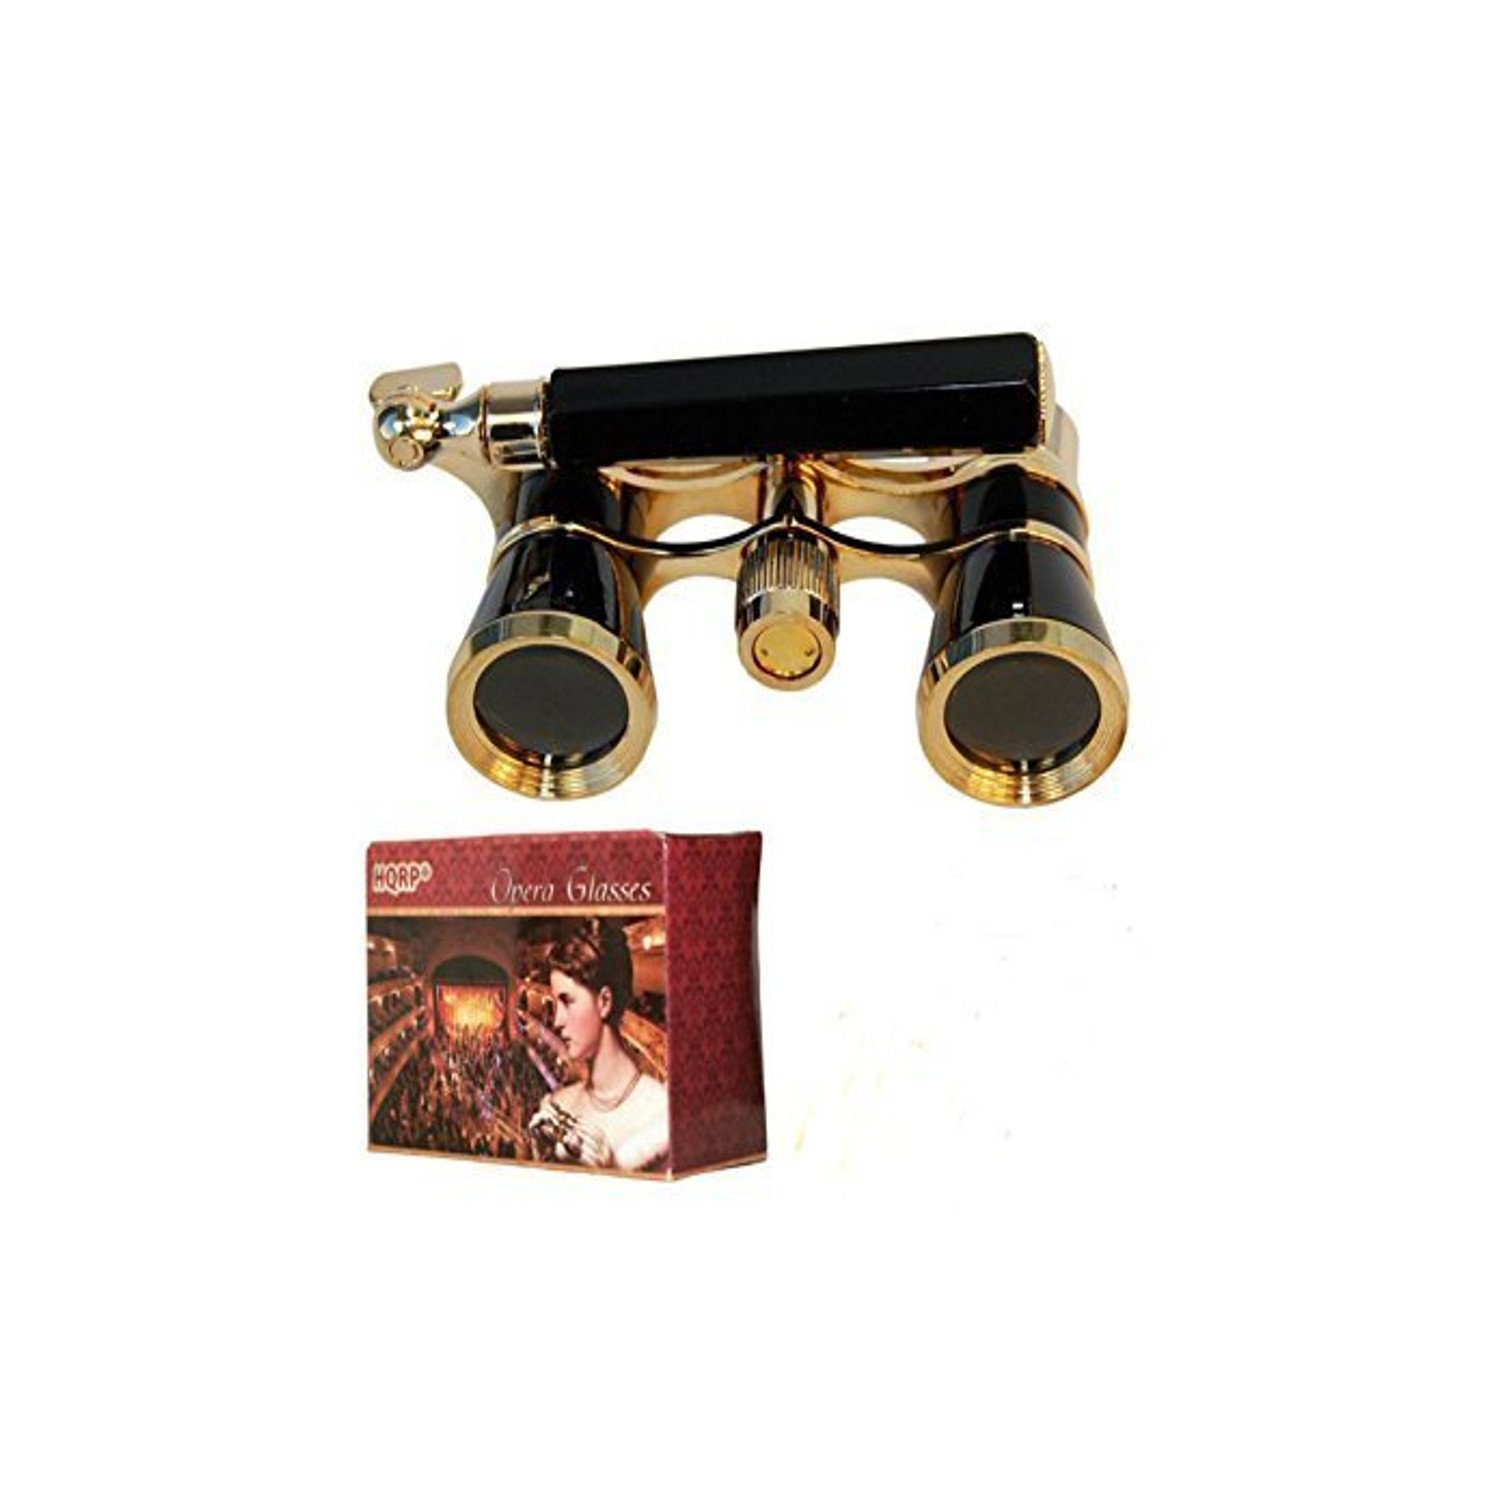 HQRP Opera Glasses Black with Gold Trim w/ Built-In Extendable Handle in Gift Box 884667801221808